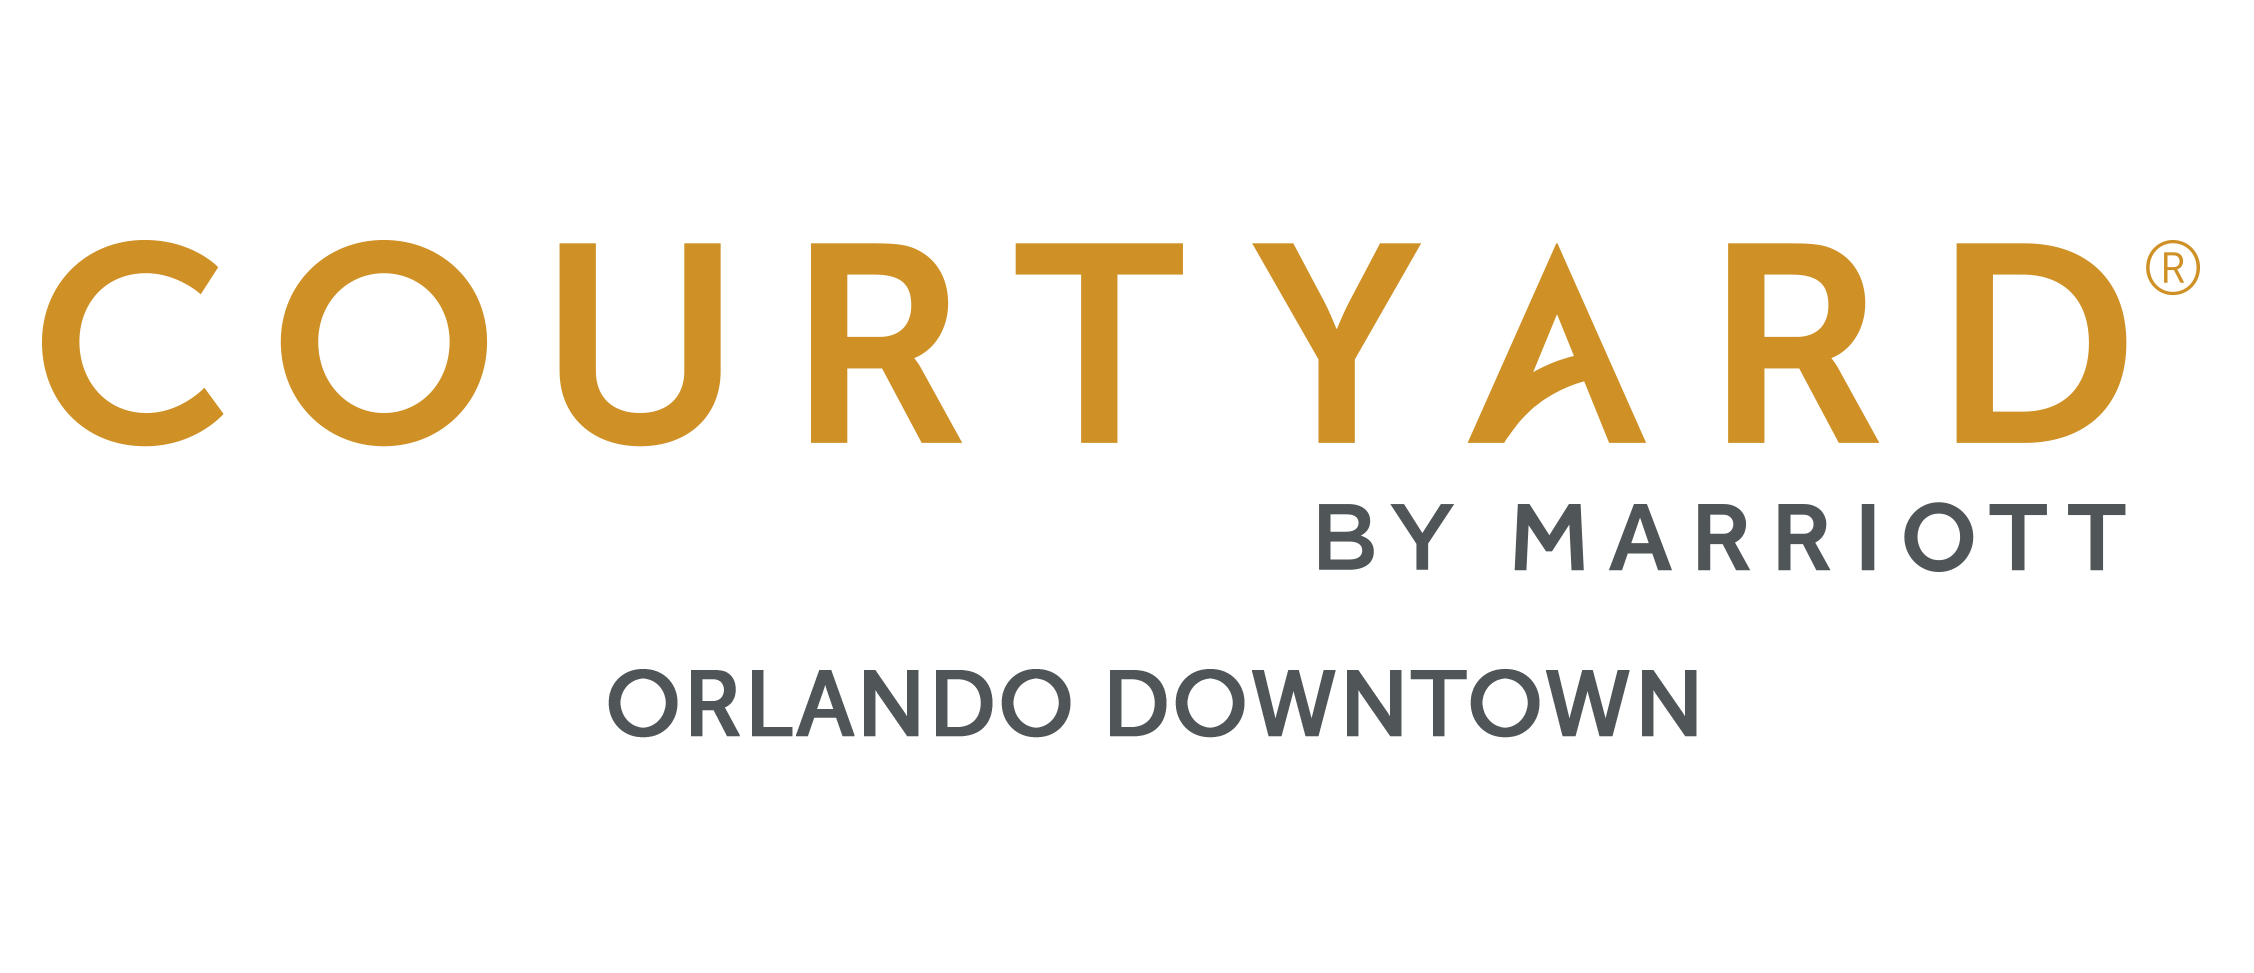 Courtyard by Marriott - Orlando